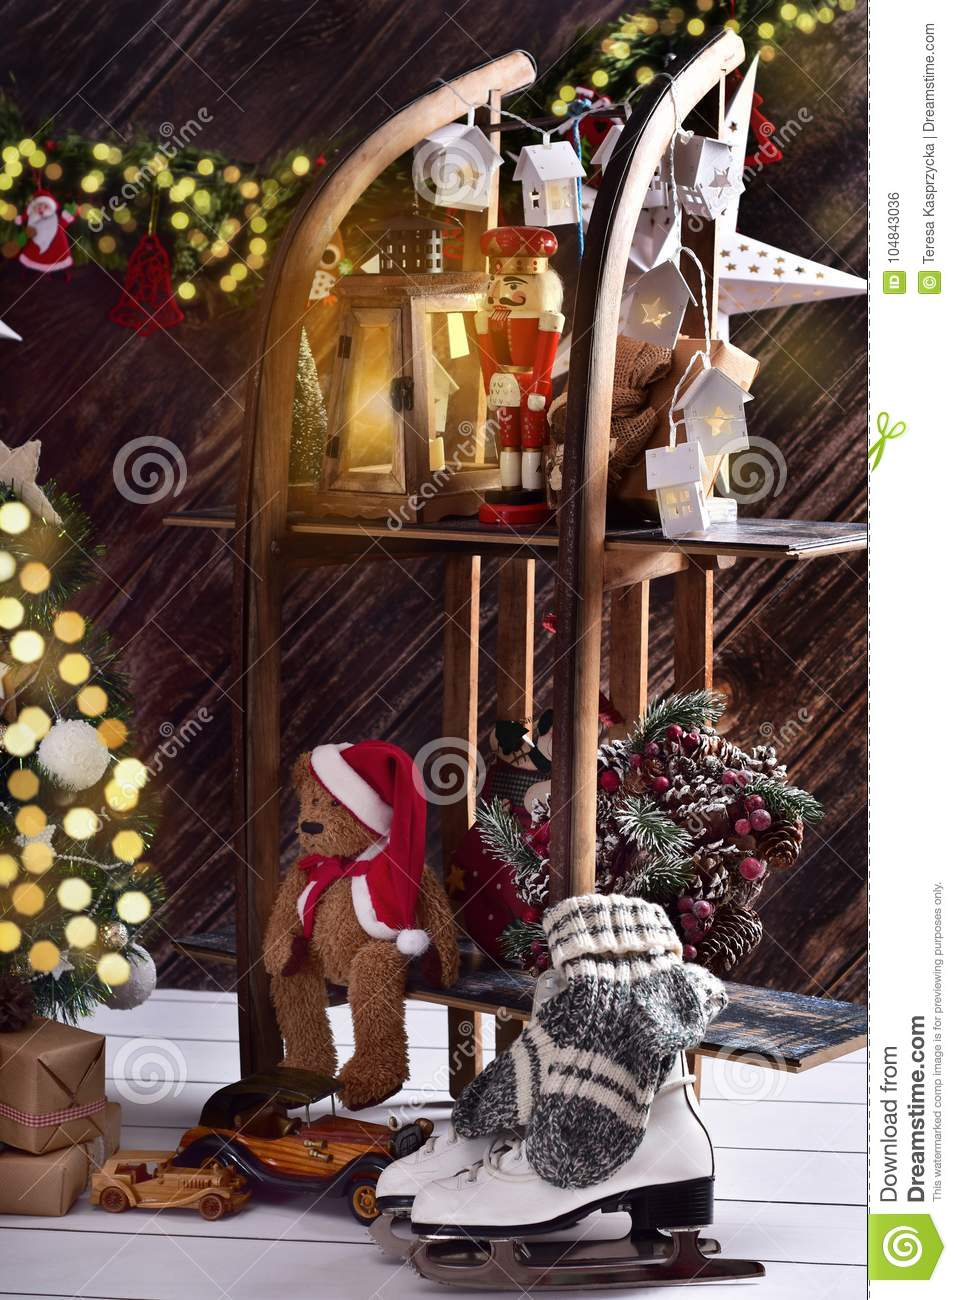 creative christmas decoration on shelves made of wooden sled - Wooden Sled Decoration Christmas